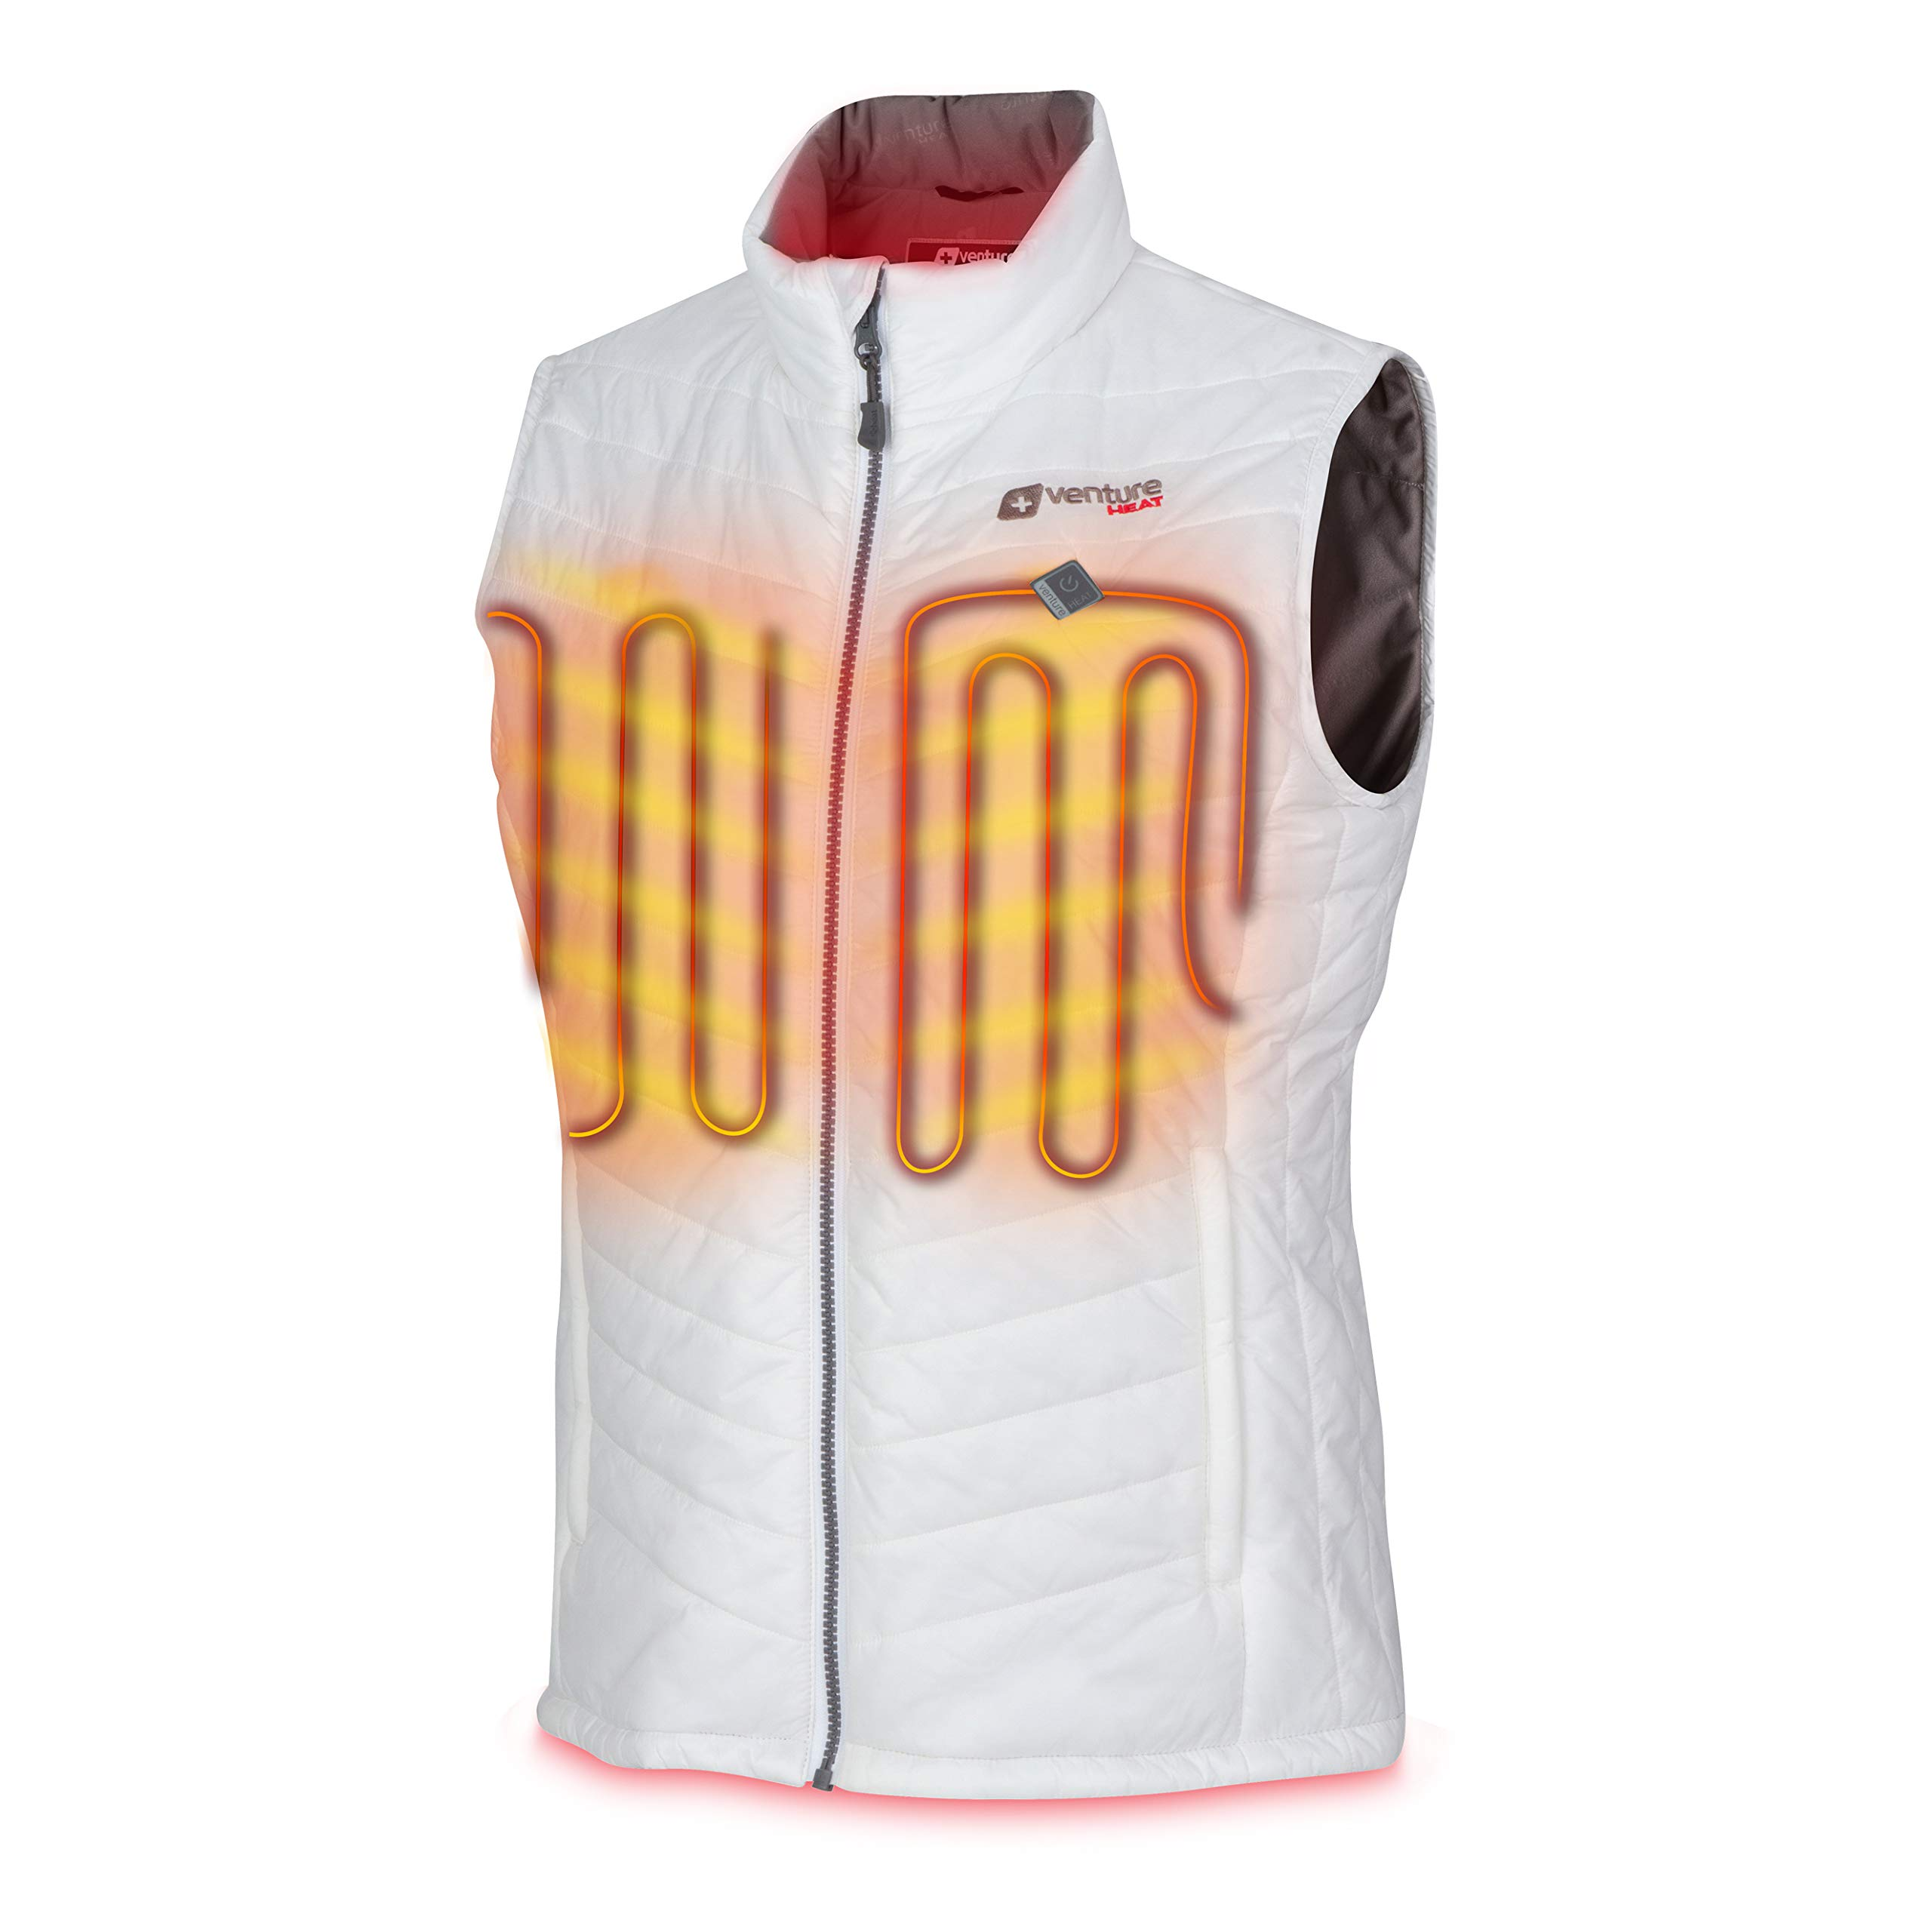 Venture Heat Women's Heated Vest with Battery Pack - Insulated Electric Jacket, Puffer Vest, Roam 2.0 (M, White) by Venture Heat